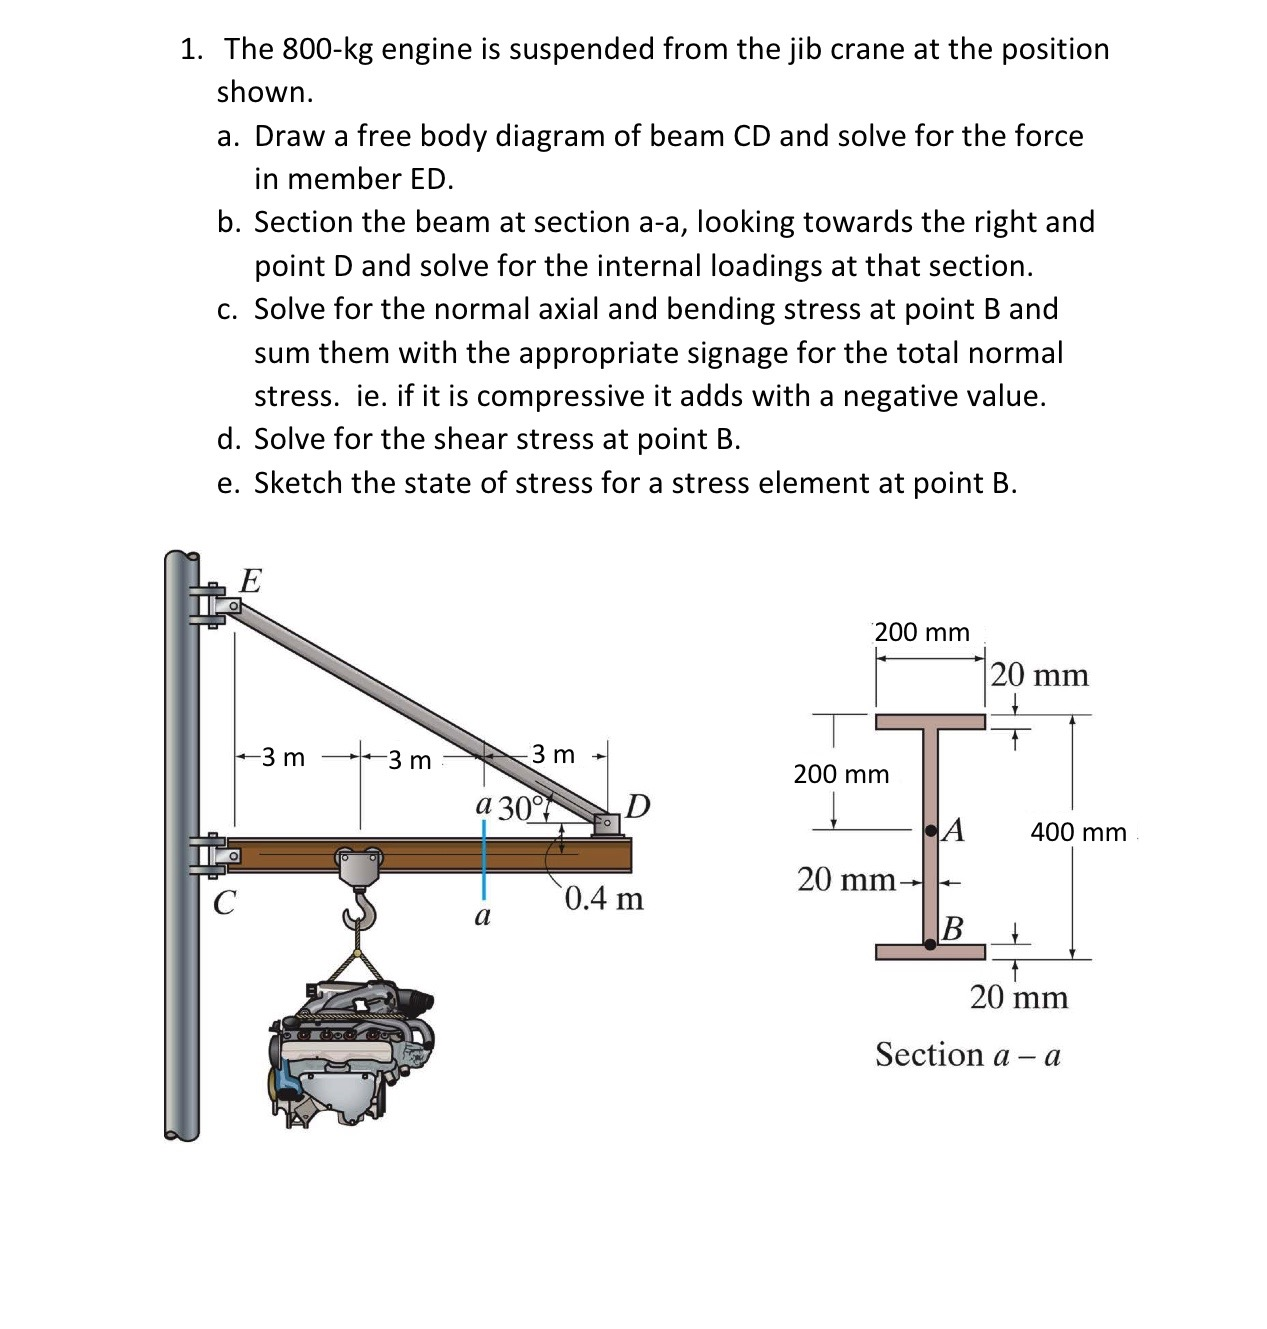 Tower Crane Design Calculations : The kg engine is suspended from jib crane